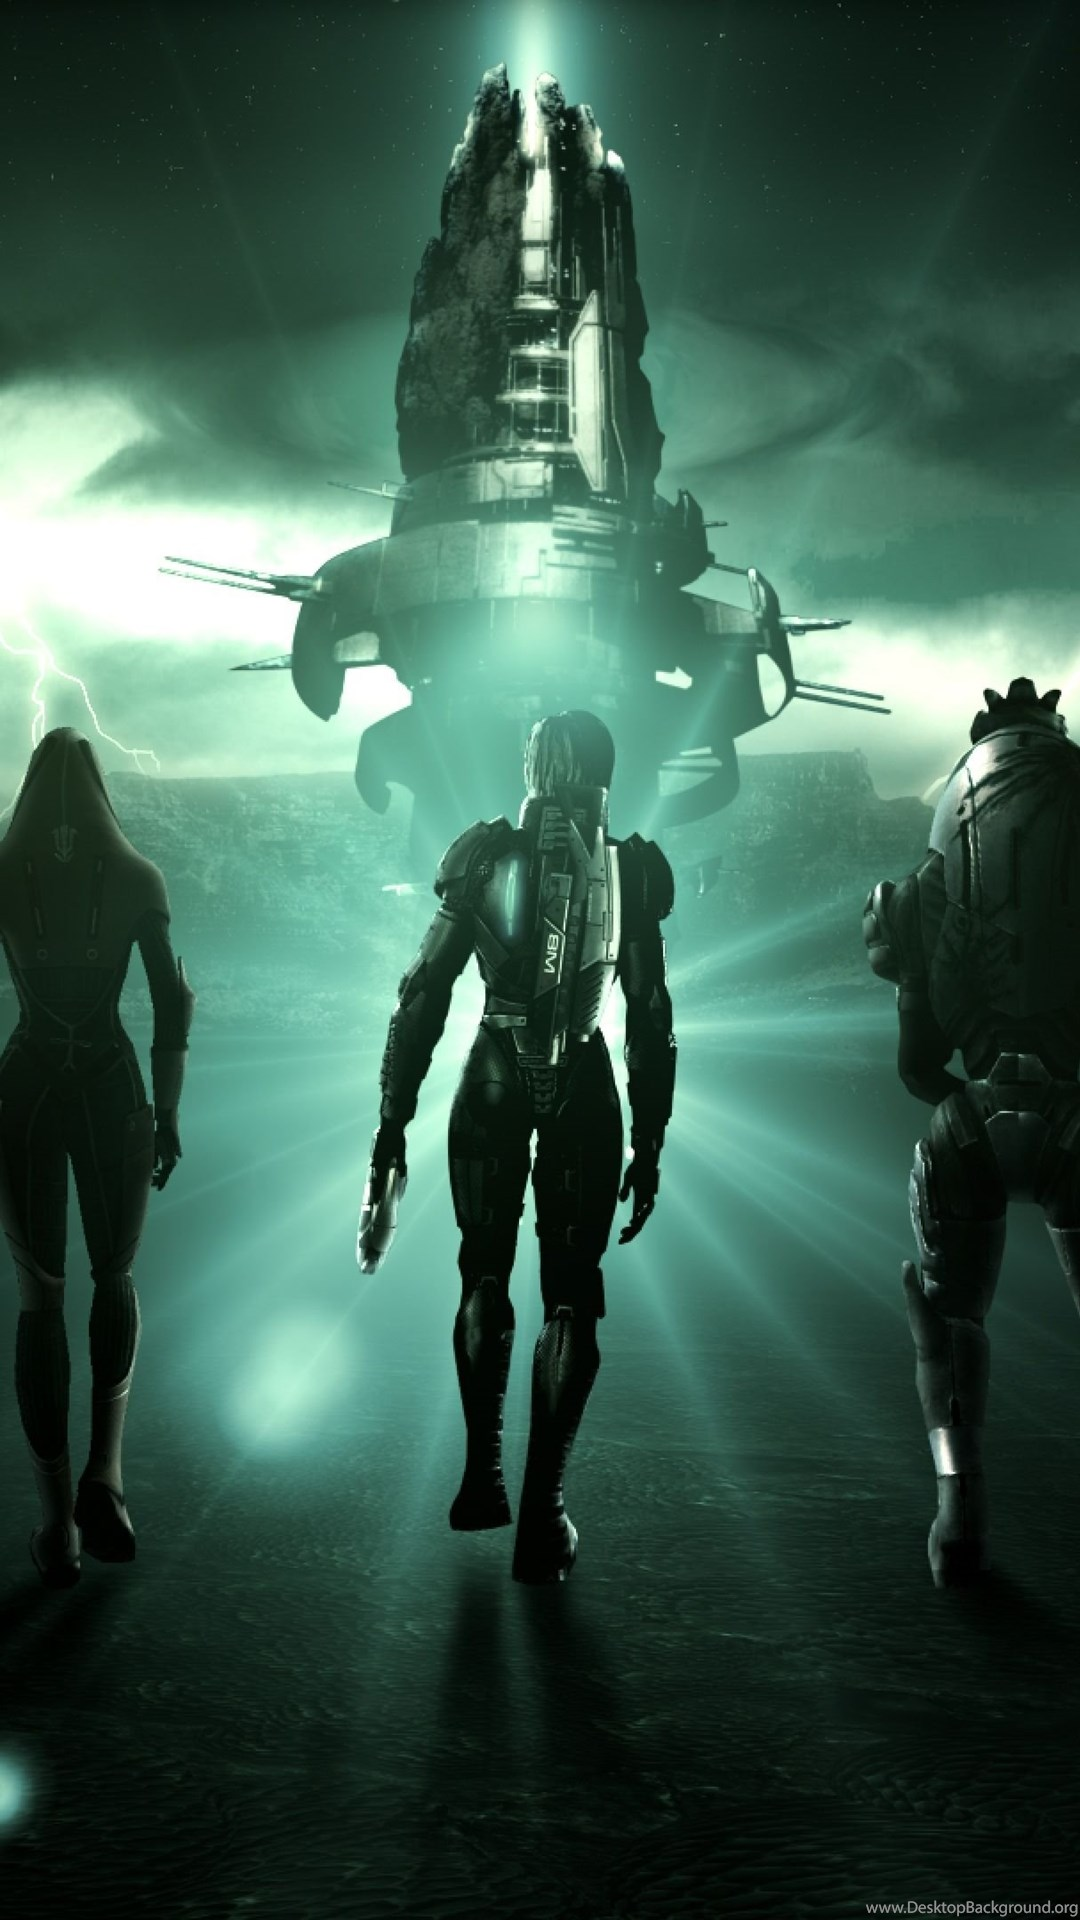 Mobile Android Tablet Ultra Hd Mass Effect 1787840 Hd Wallpaper Backgrounds Download